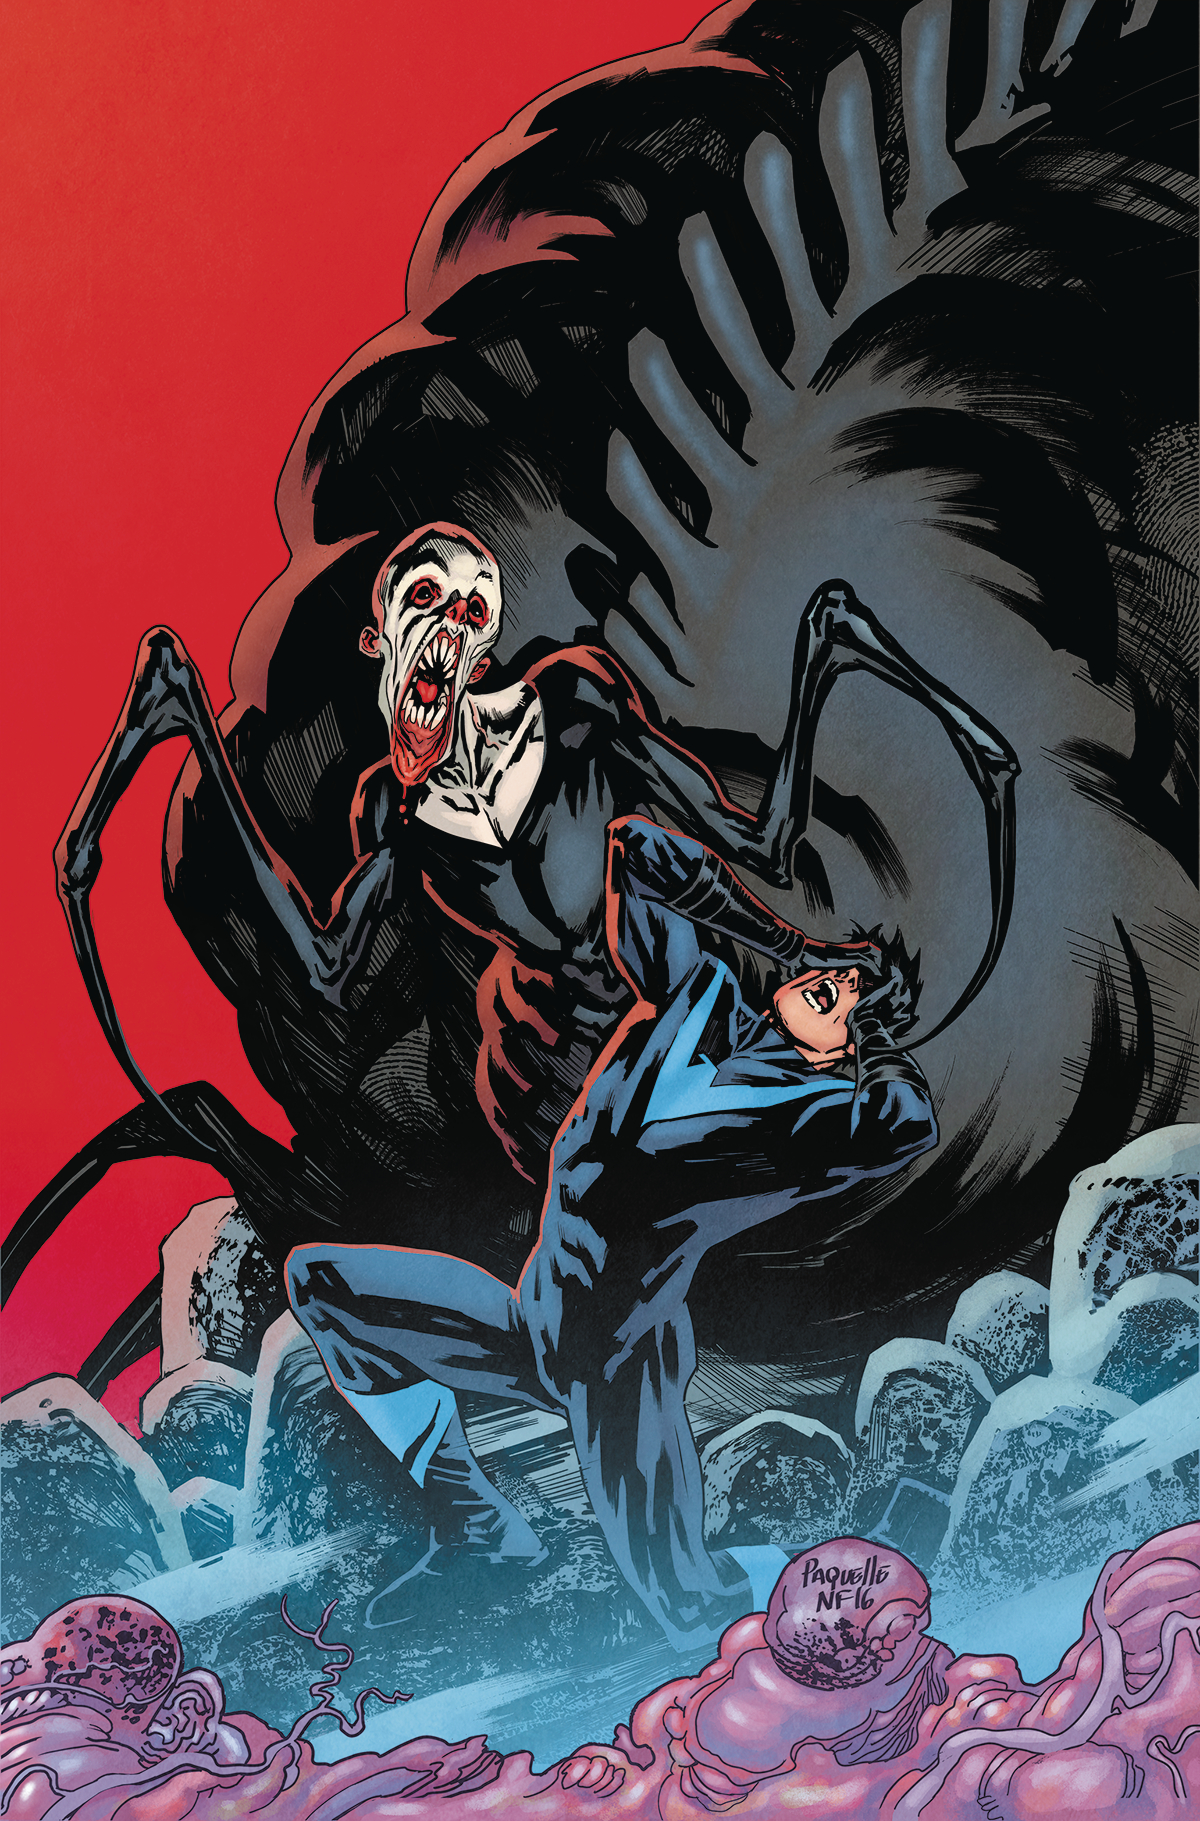 NIGHTWING #5 (MONSTER MEN)